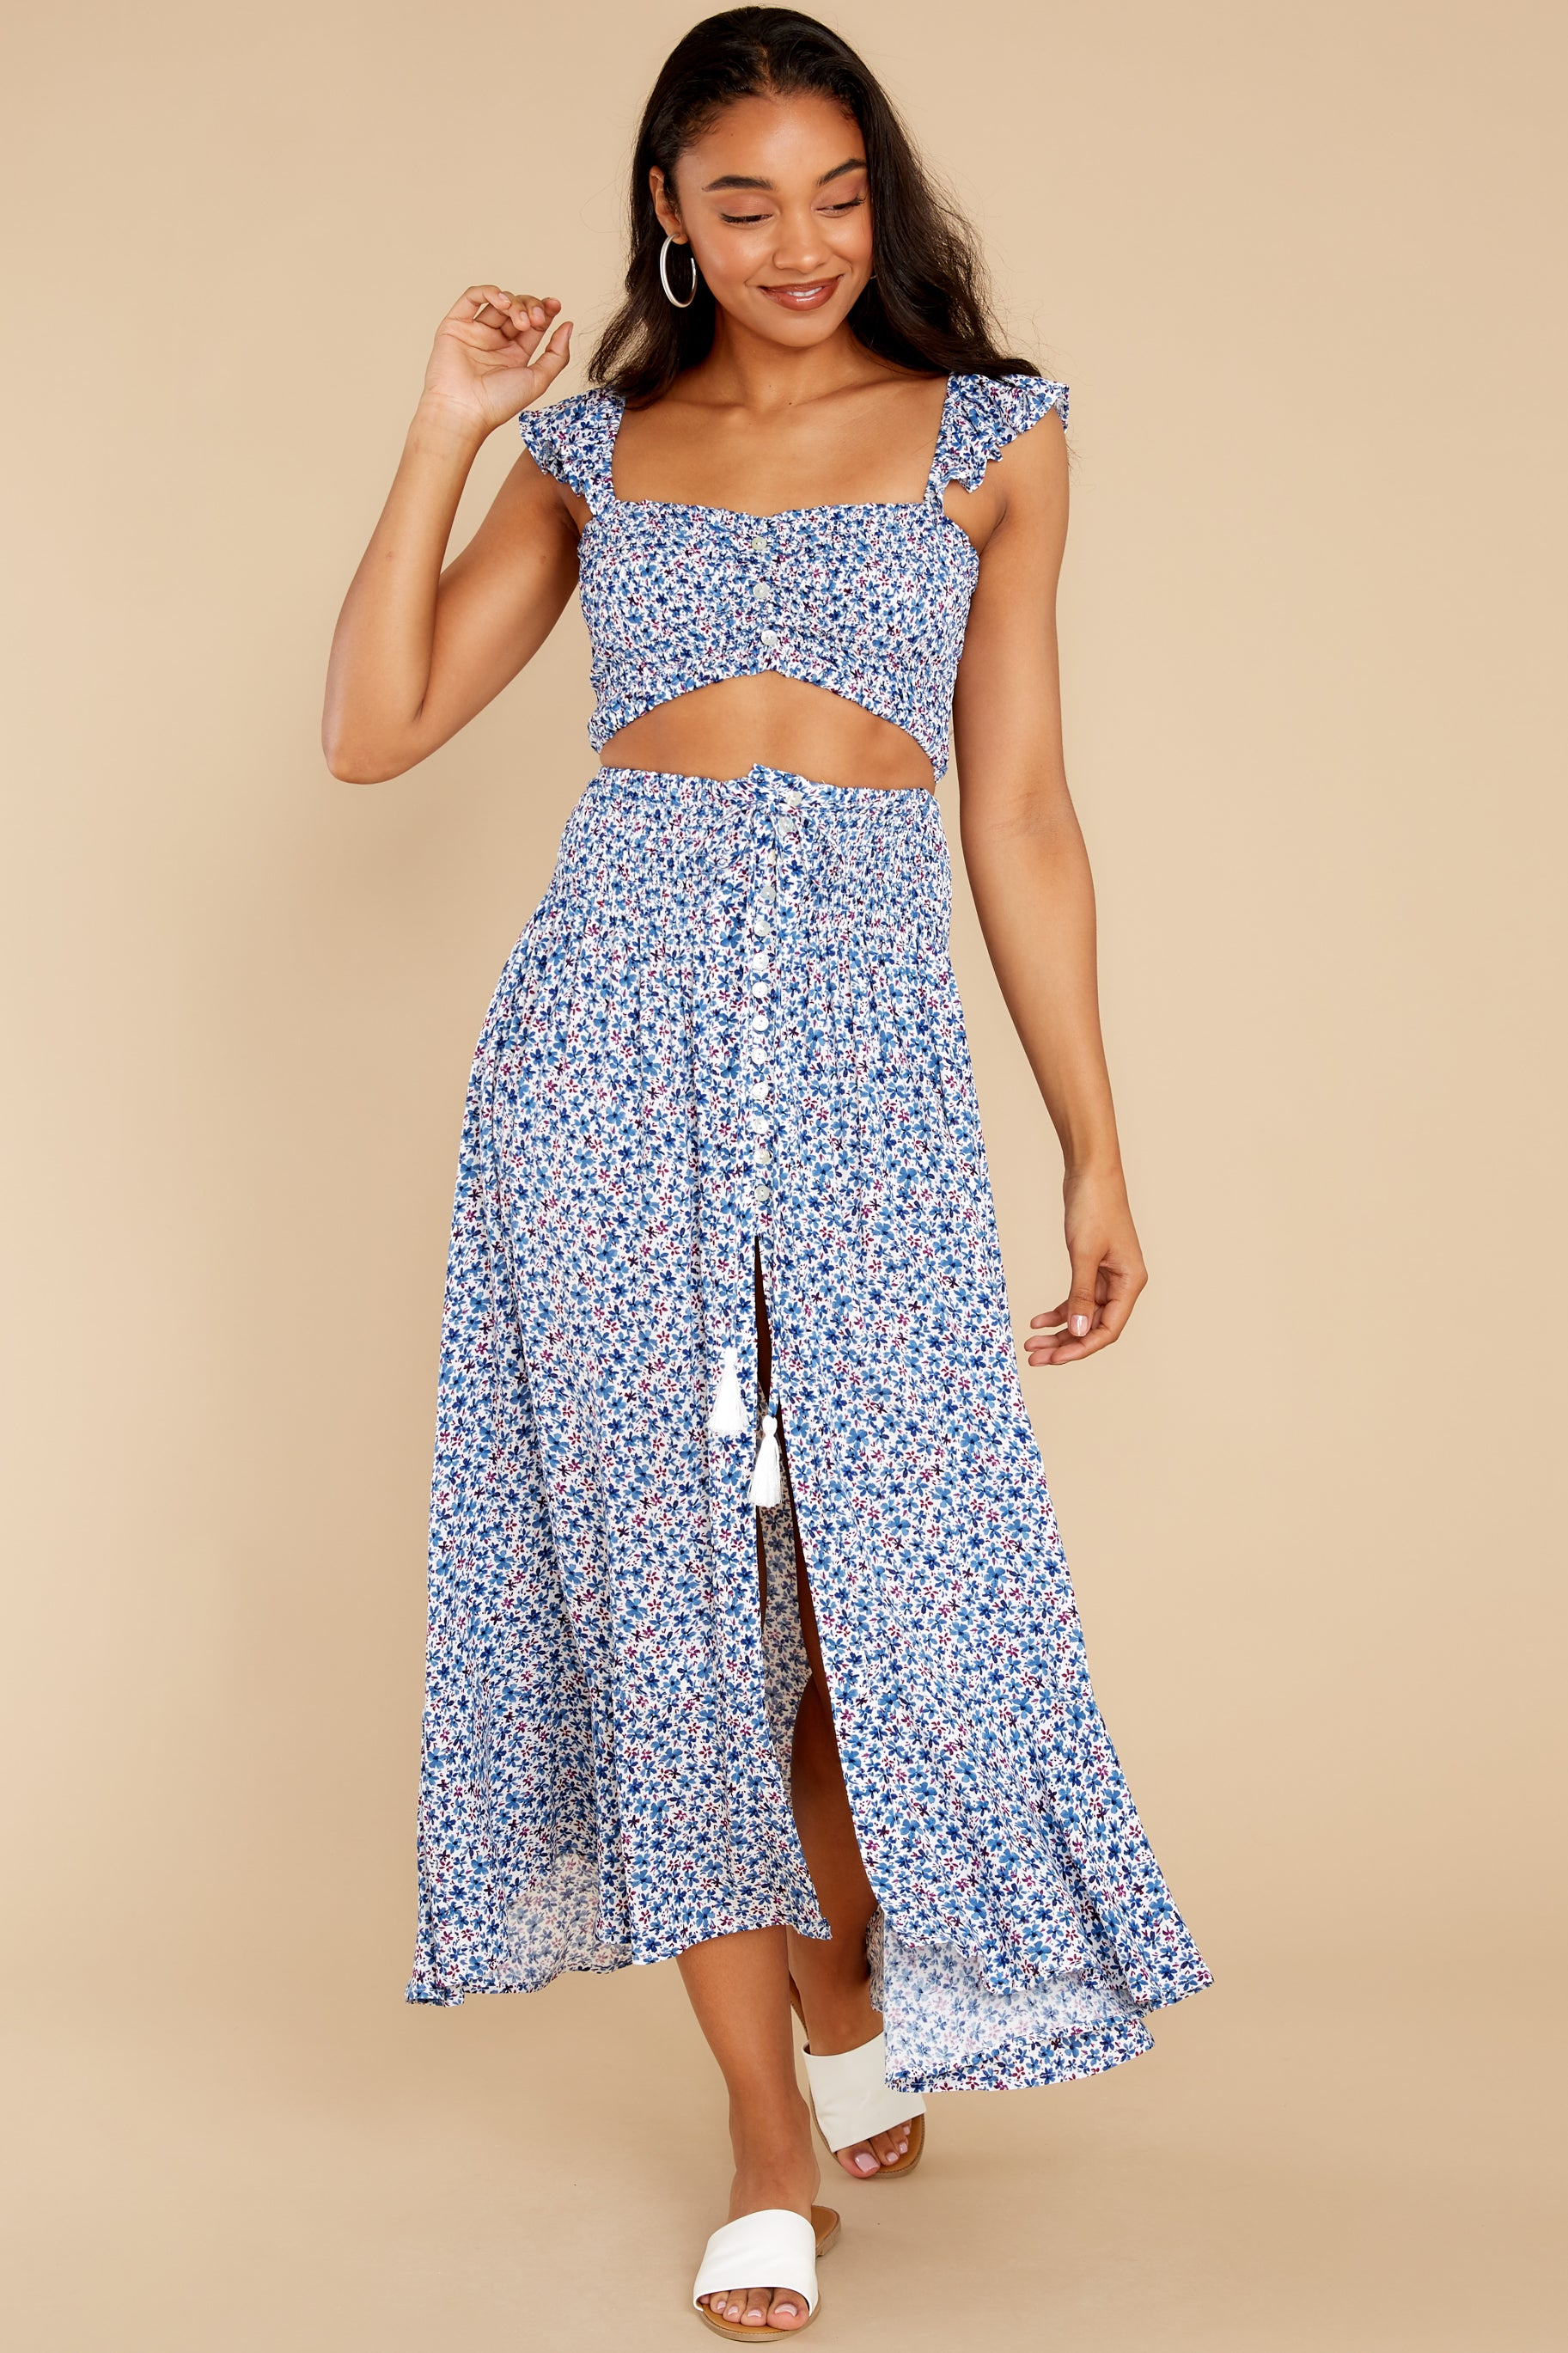 1 Lifting The Spirits Blue Floral Print Two Piece Set at reddress.com